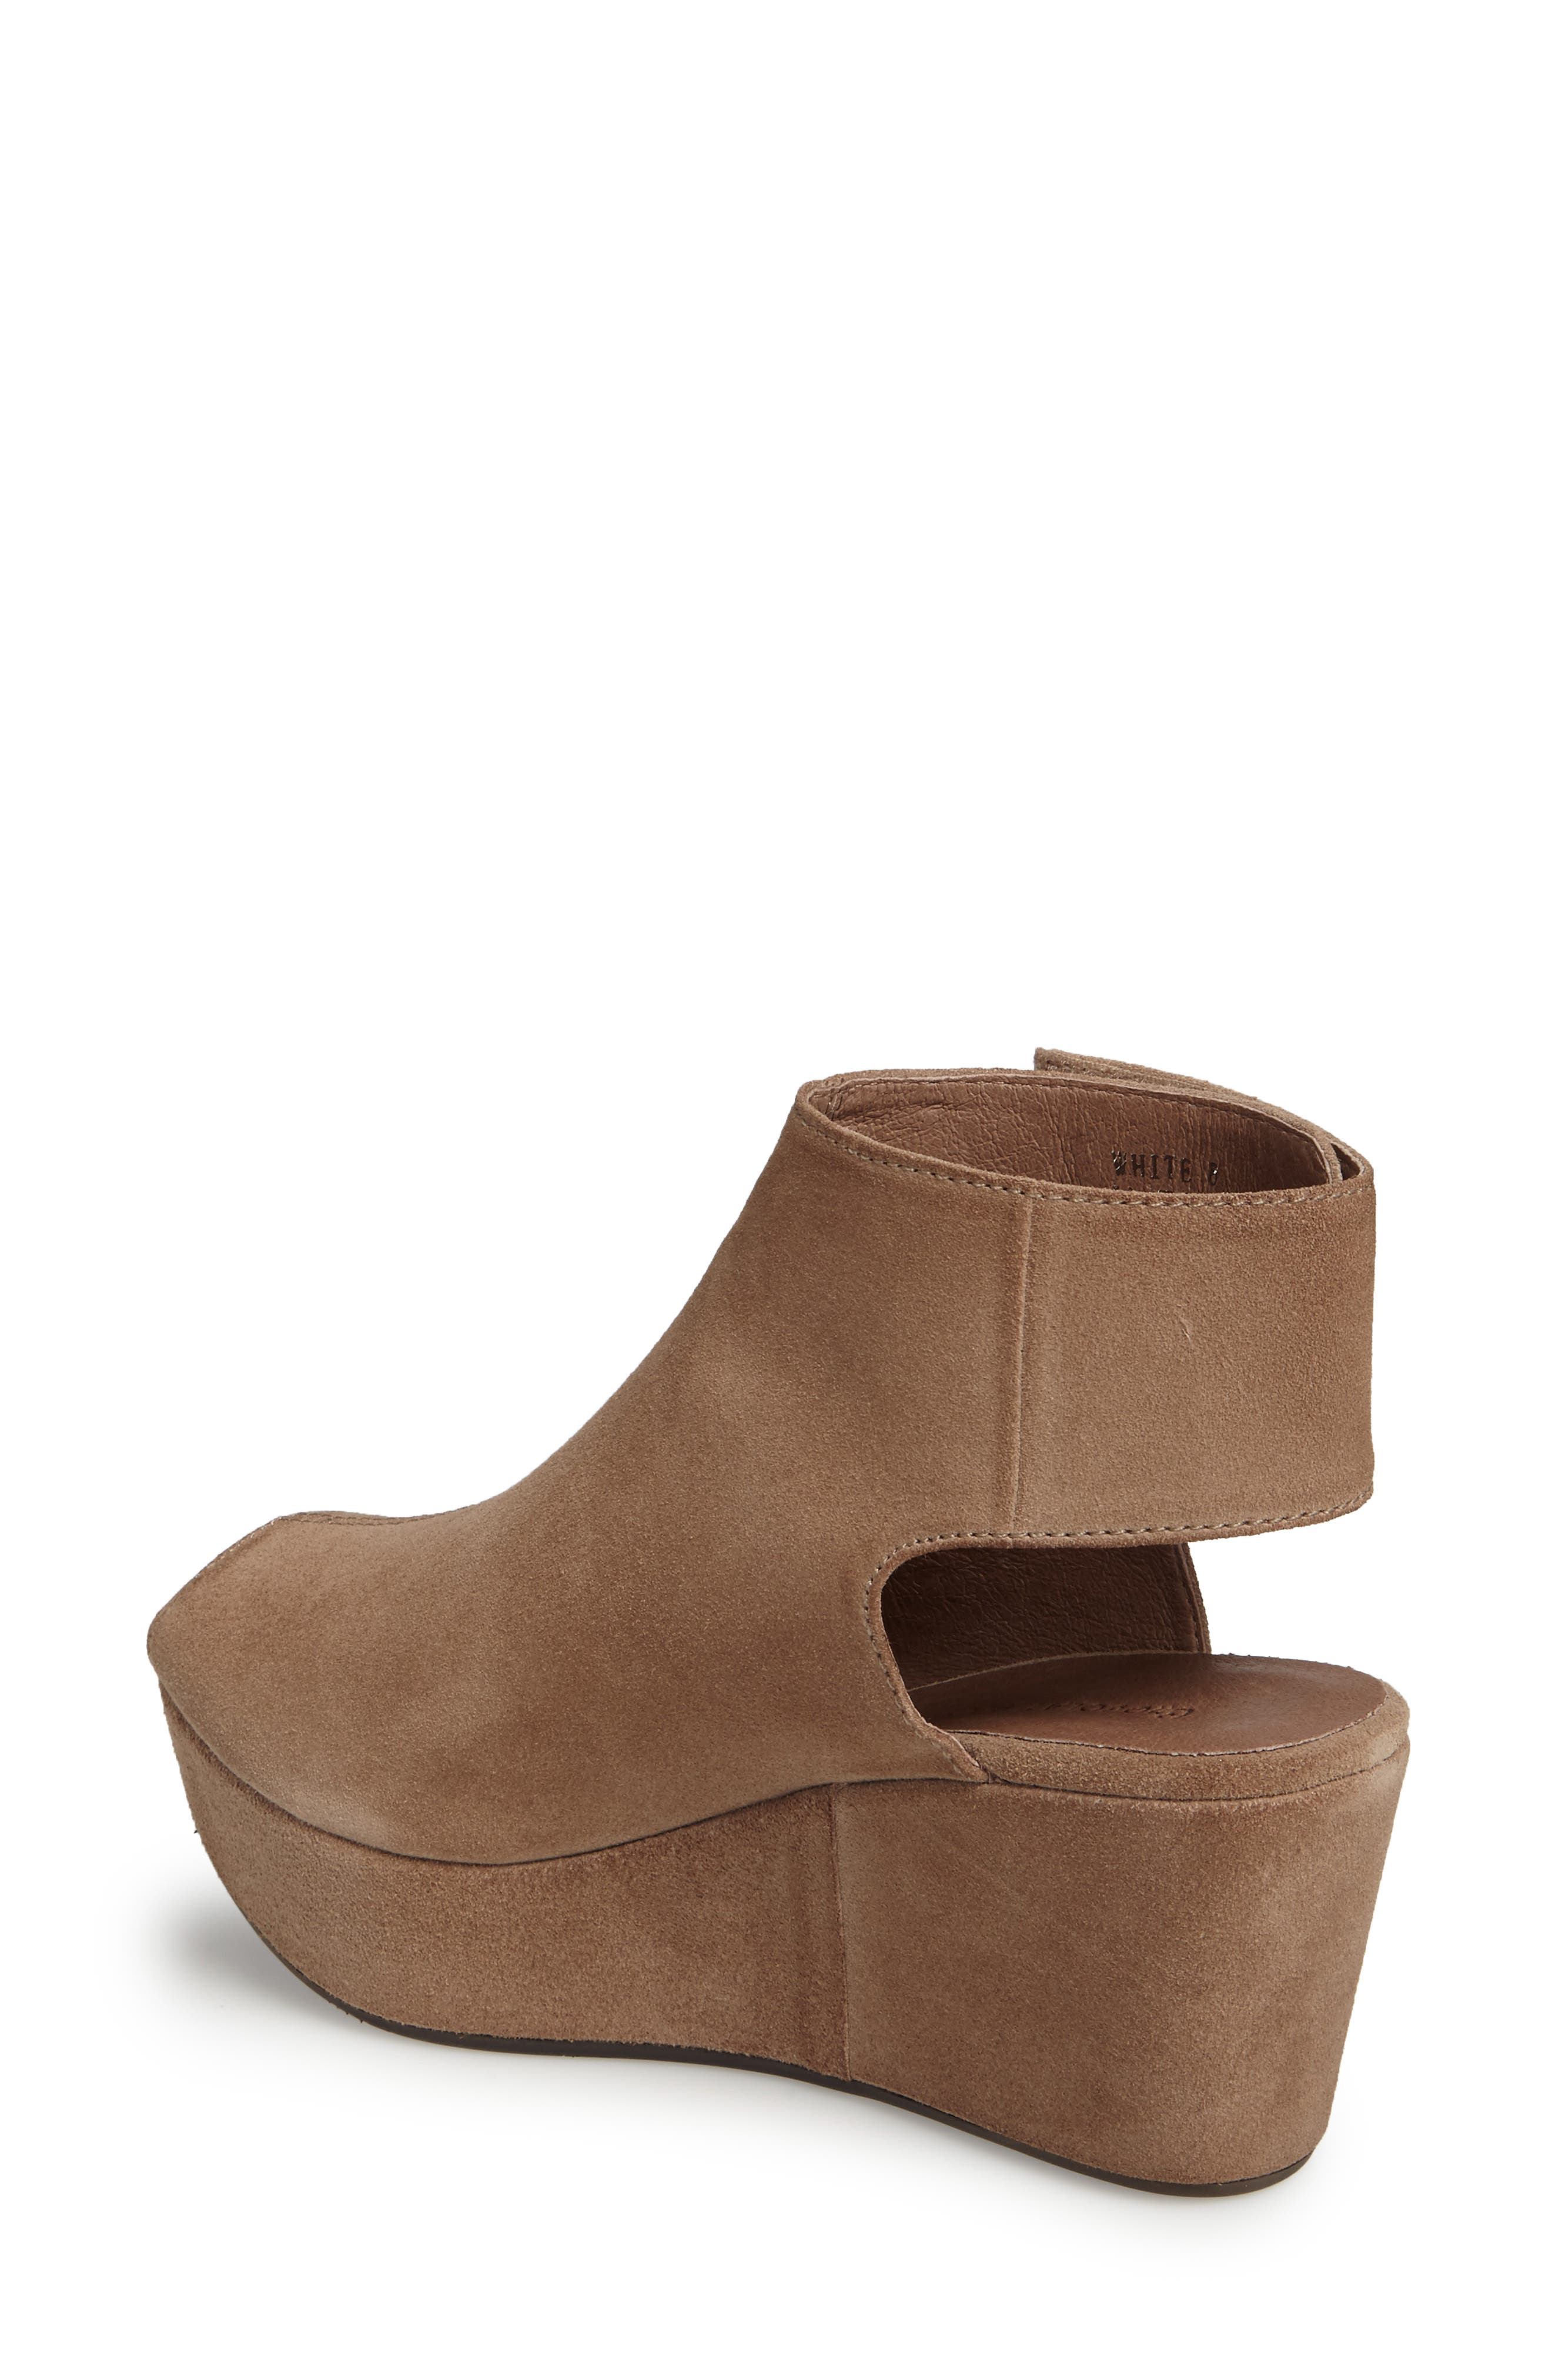 Cutout Wedge Sandal,                             Alternate thumbnail 2, color,                             Taupe Suede